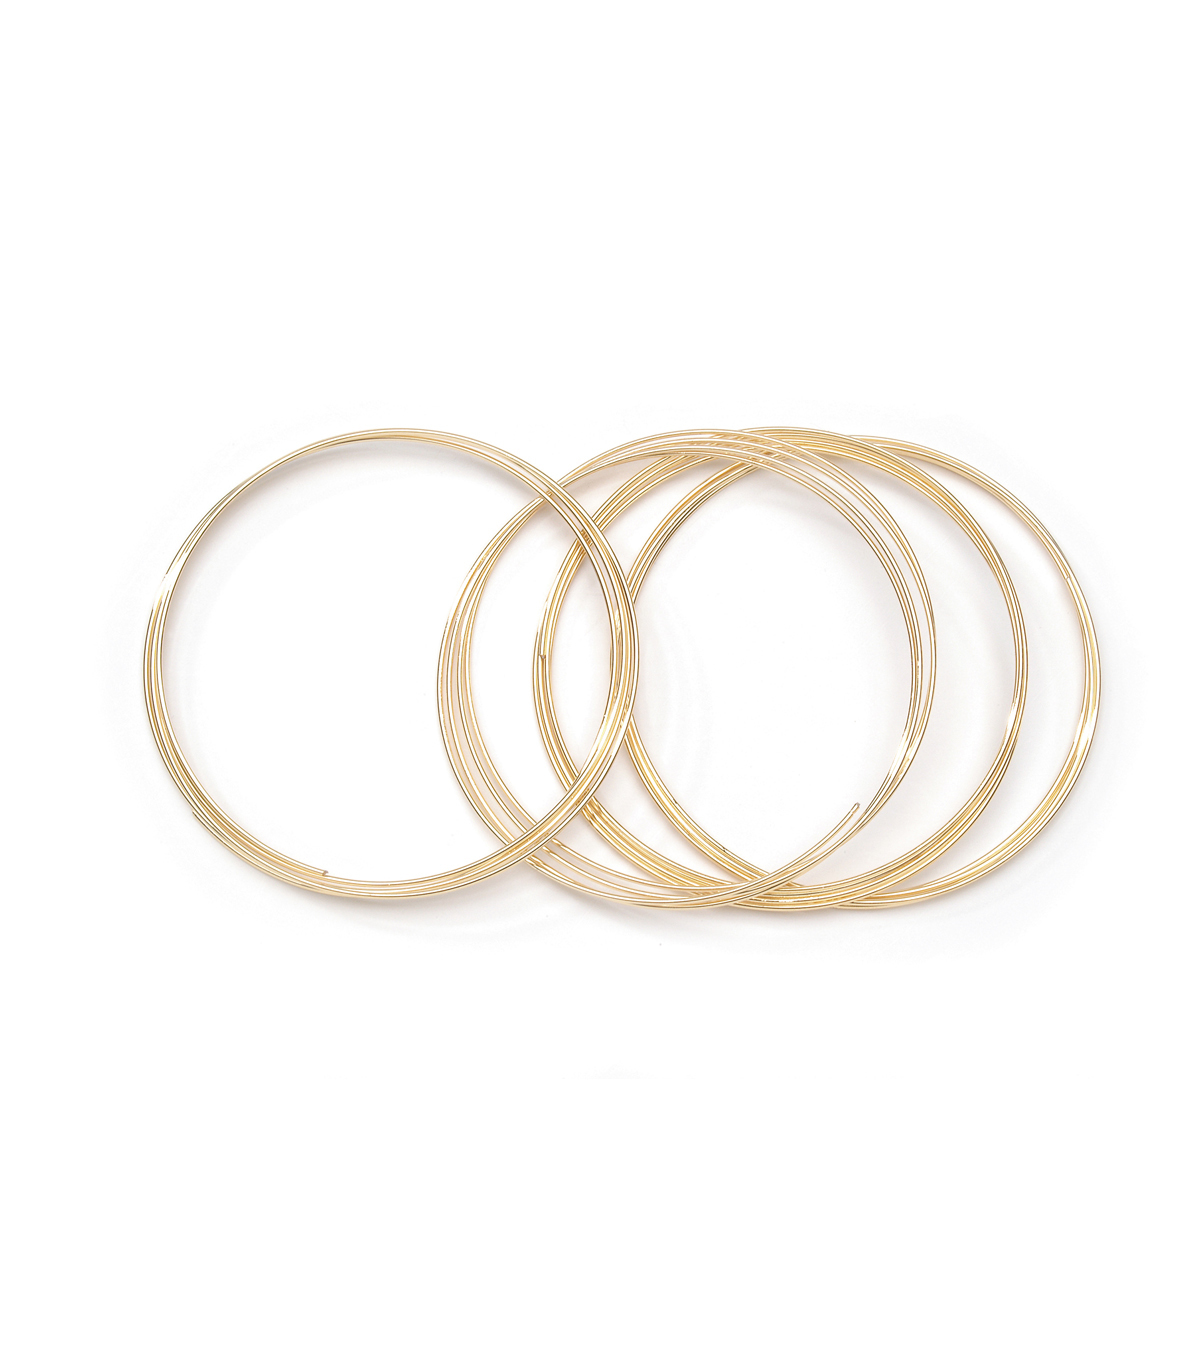 Jewelry Making Gold Plated Memory Wire, Bracelet Coil   JOANN